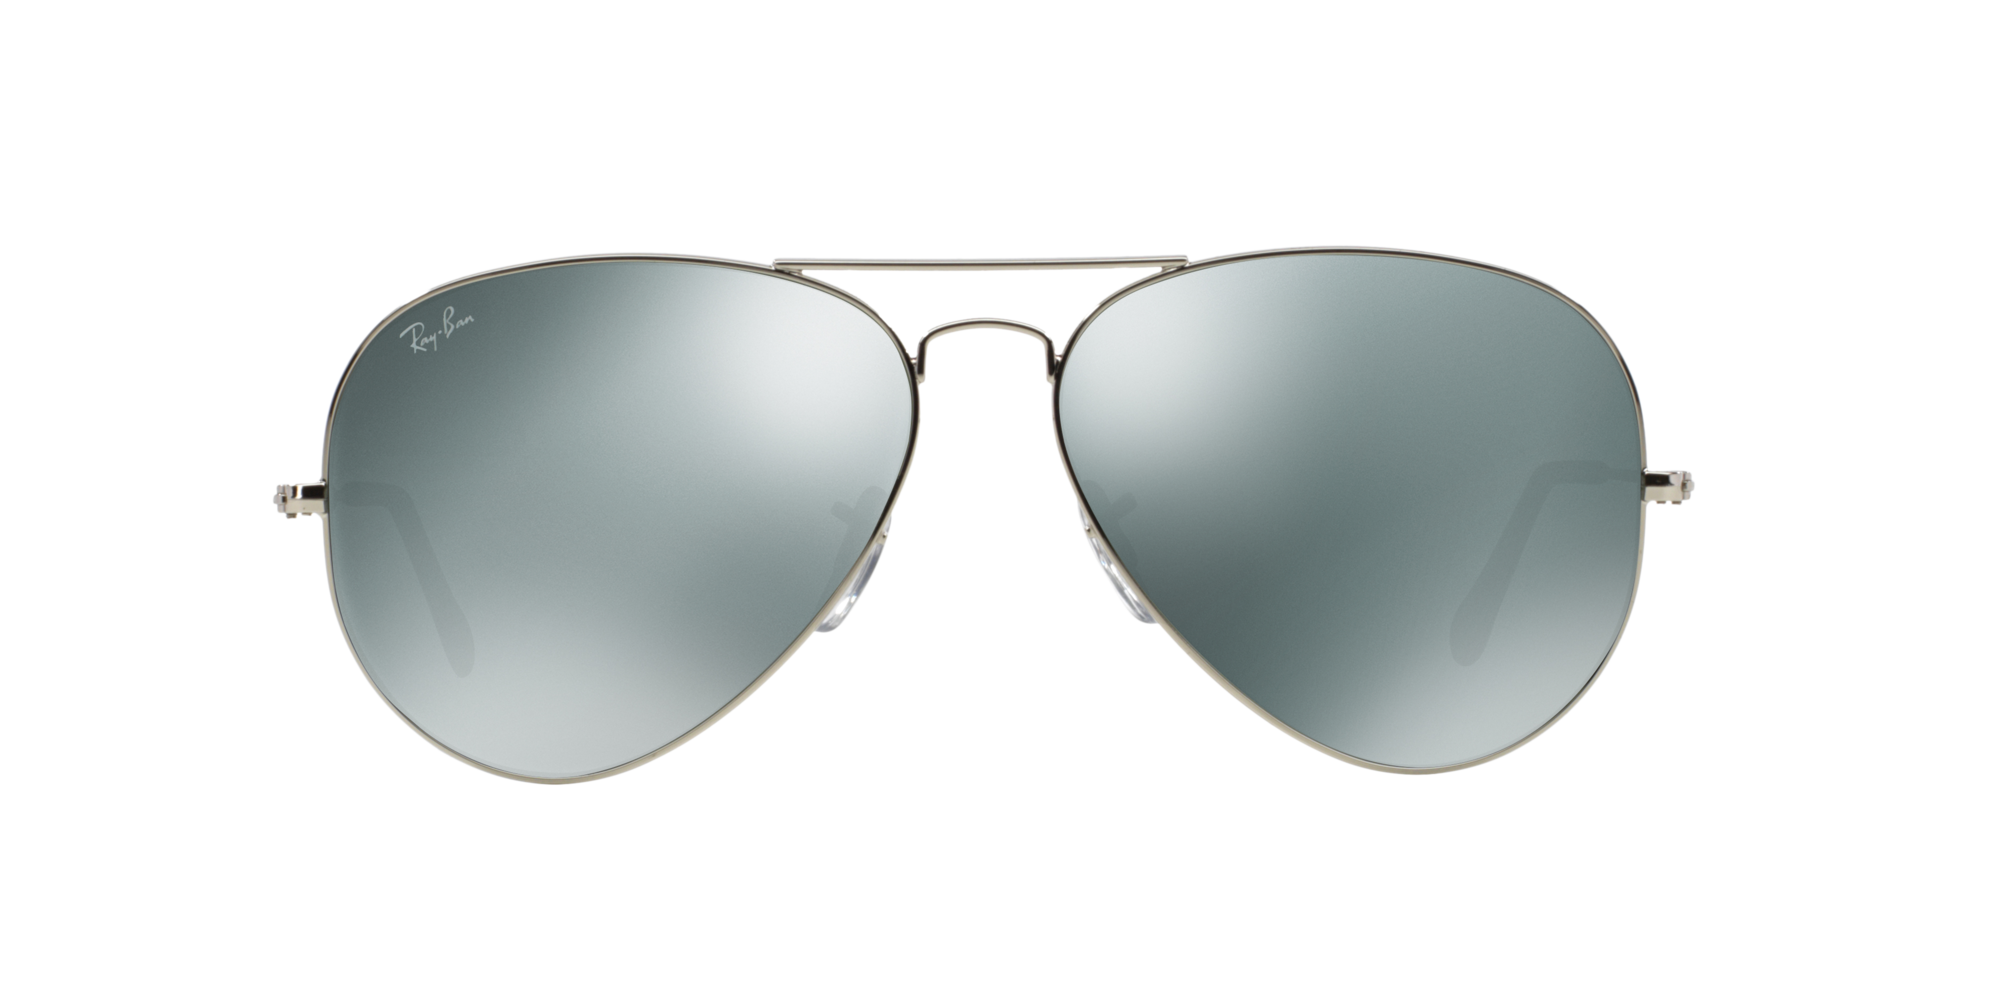 RAY-BAN AVIATOR CLASSIC RB 3025 003/40  62mm.-360